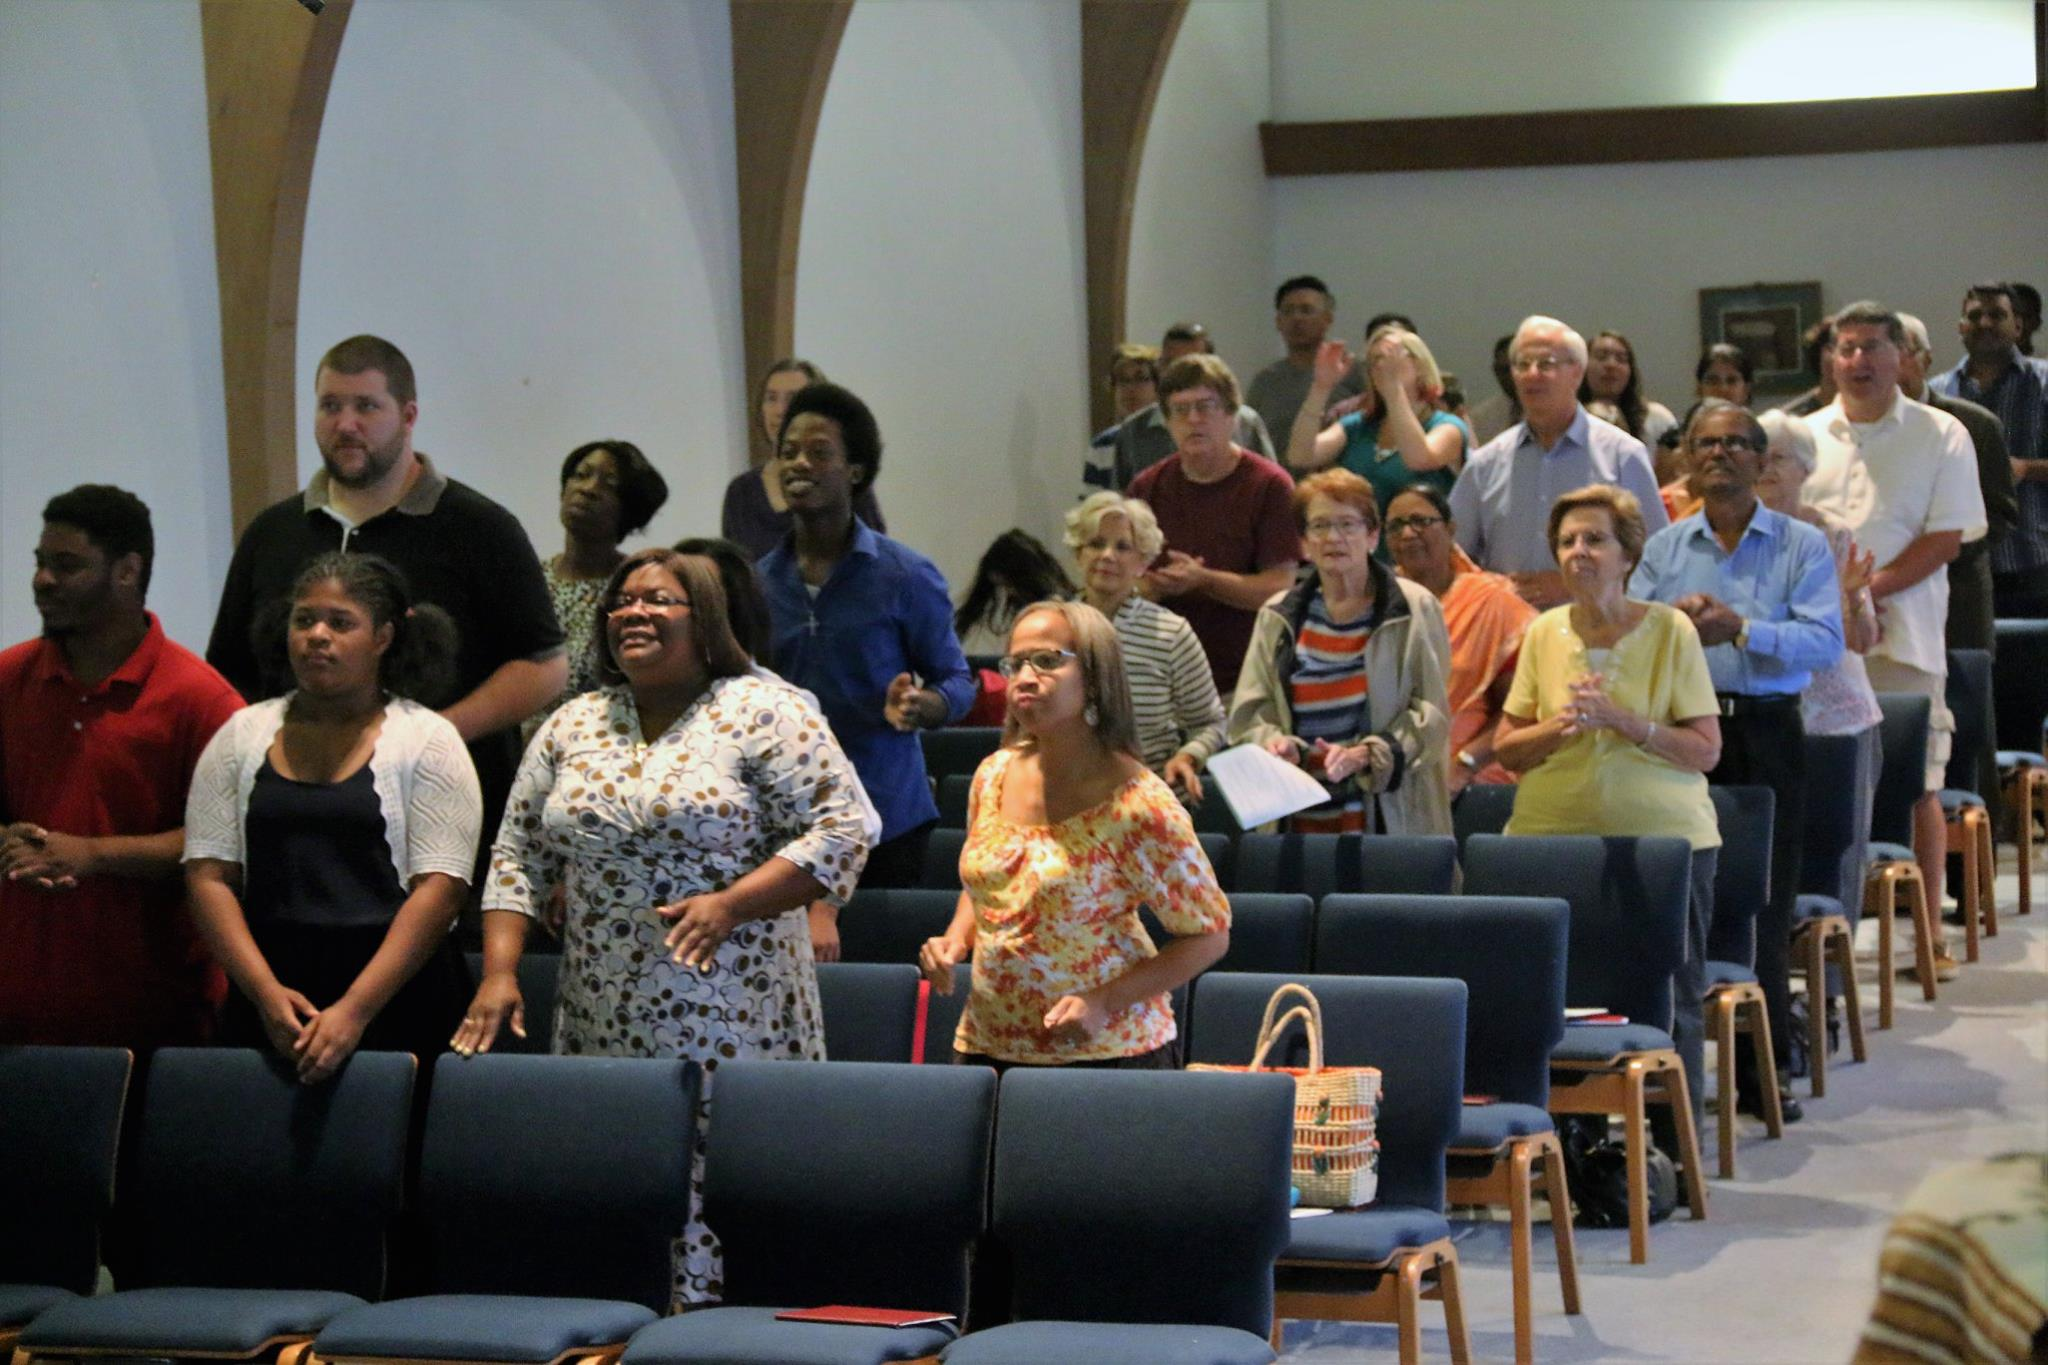 The congregation, which includes 13 nationalities, gathers for worship at Centenary UMC in Metuchen, New Jersey.